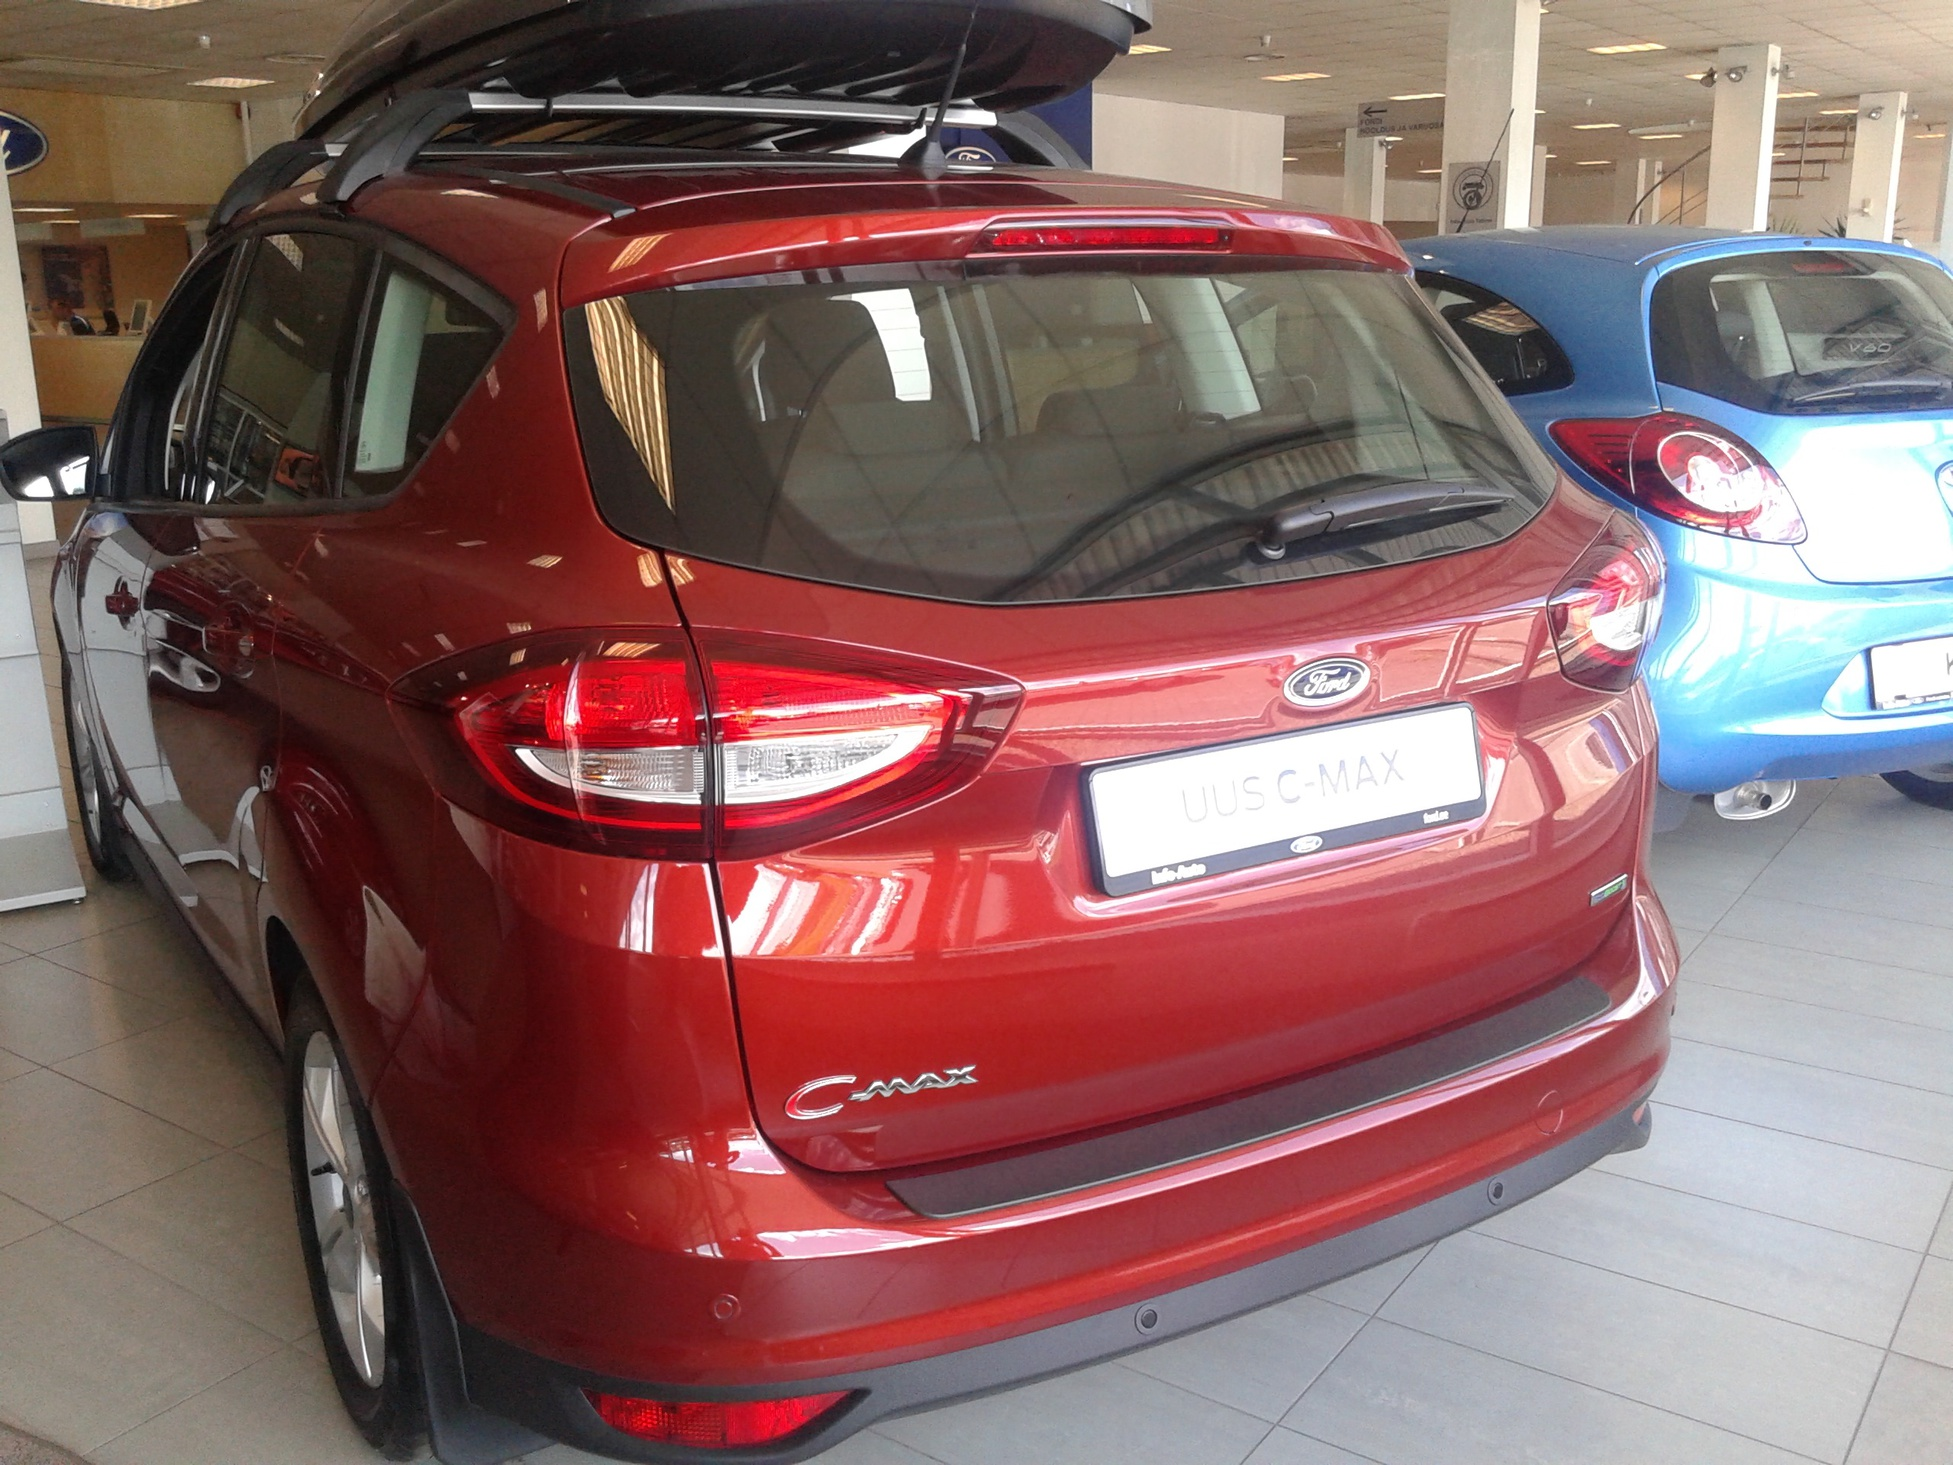 Car paint colour - New Paint Colour Red Rush From Ford Europe 20150616_124755 Jpg